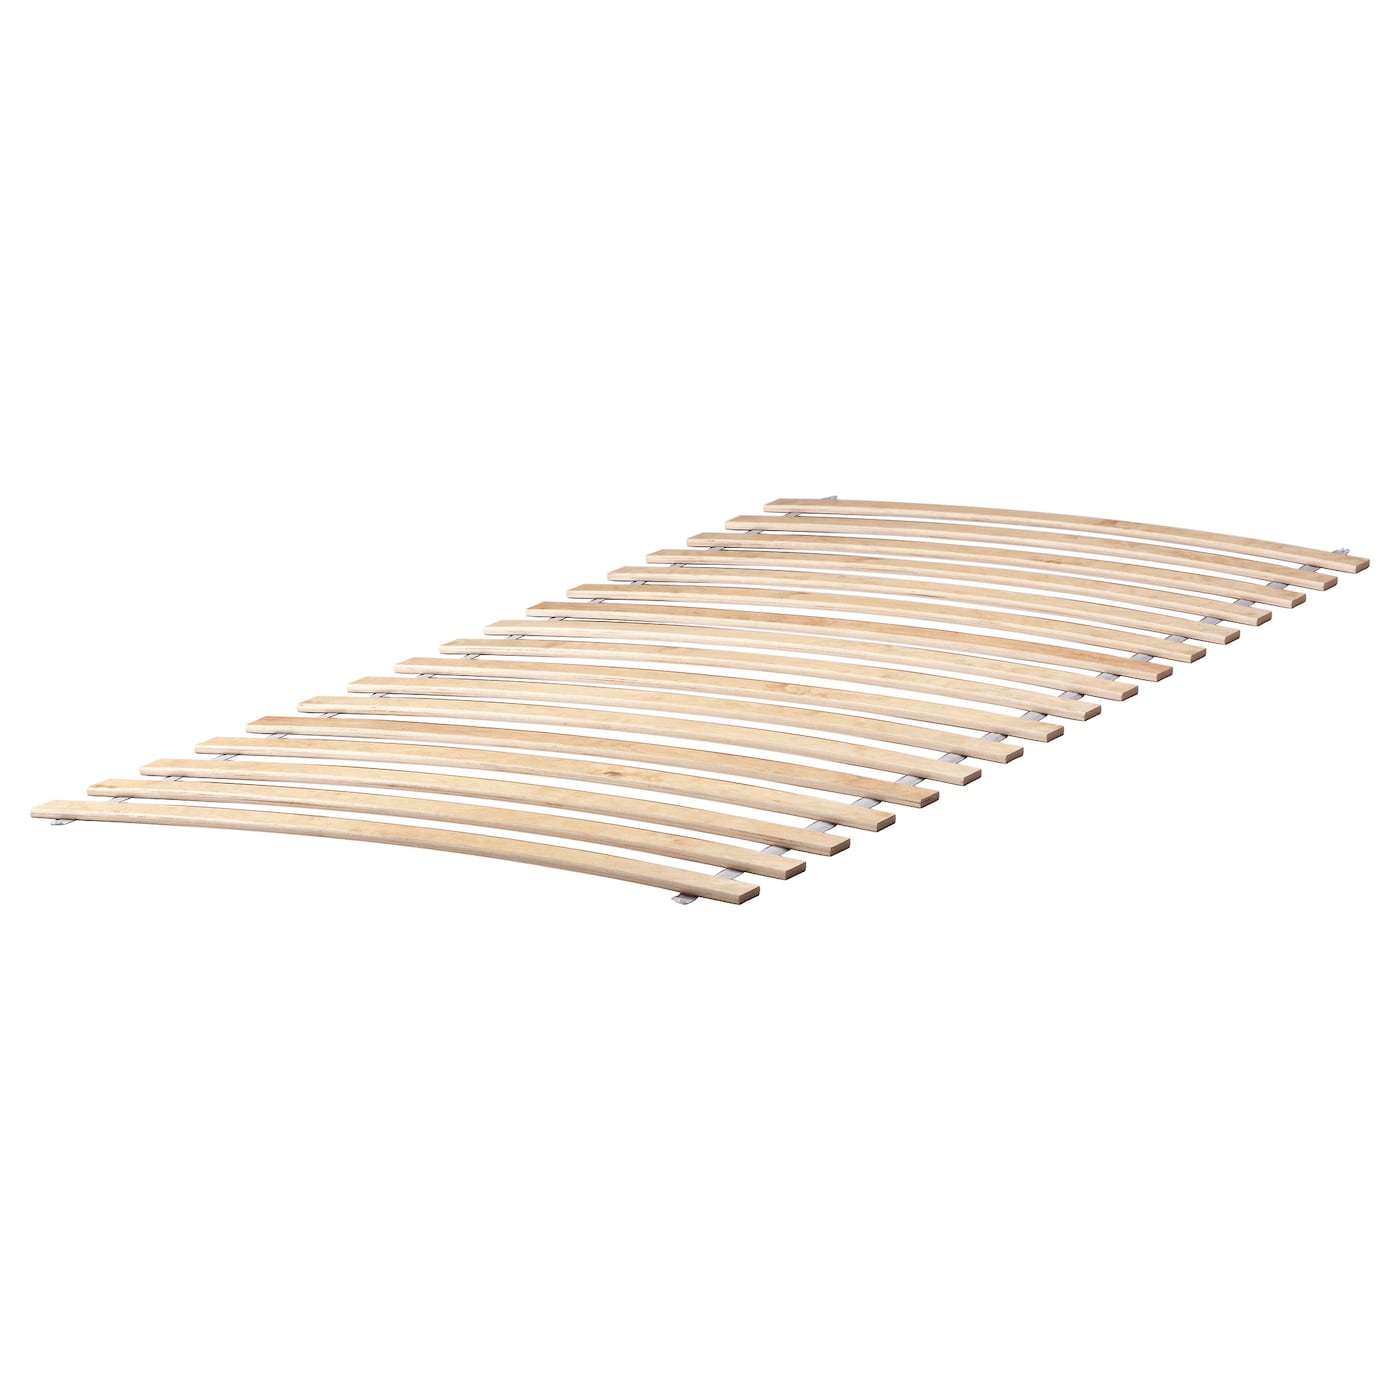 IKEA LURÖY slatted bed base 25 year guarantee. Read about the terms in the guarantee brochure.